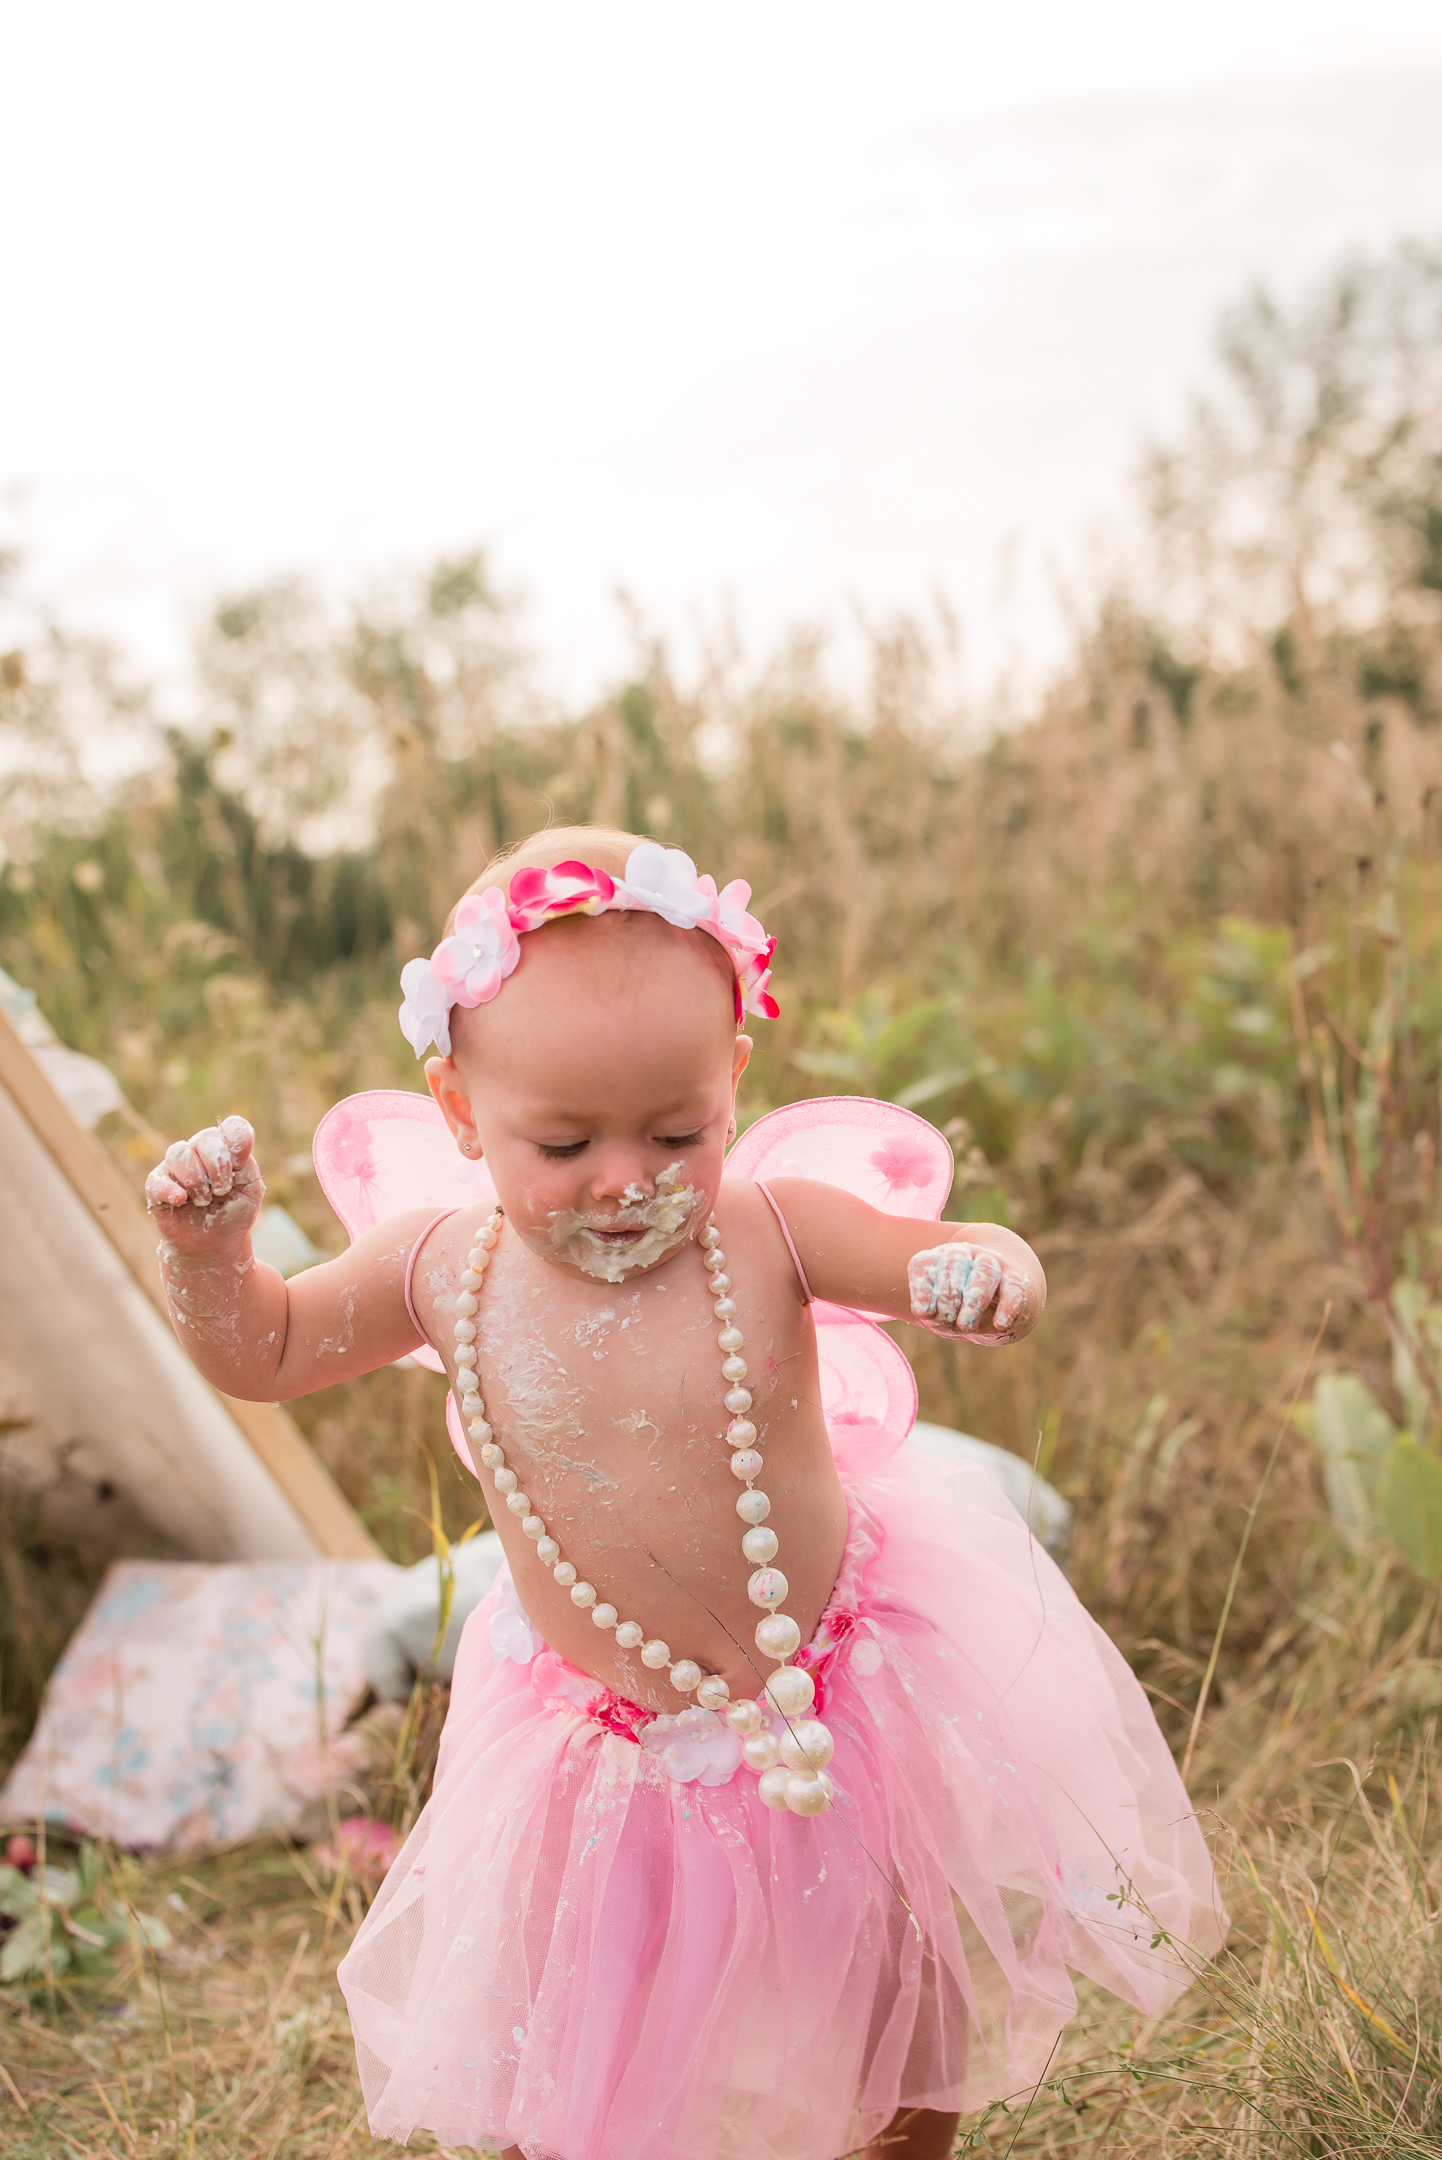 Naomi Lucienne Photography - First Birthday - 170829458.jpg